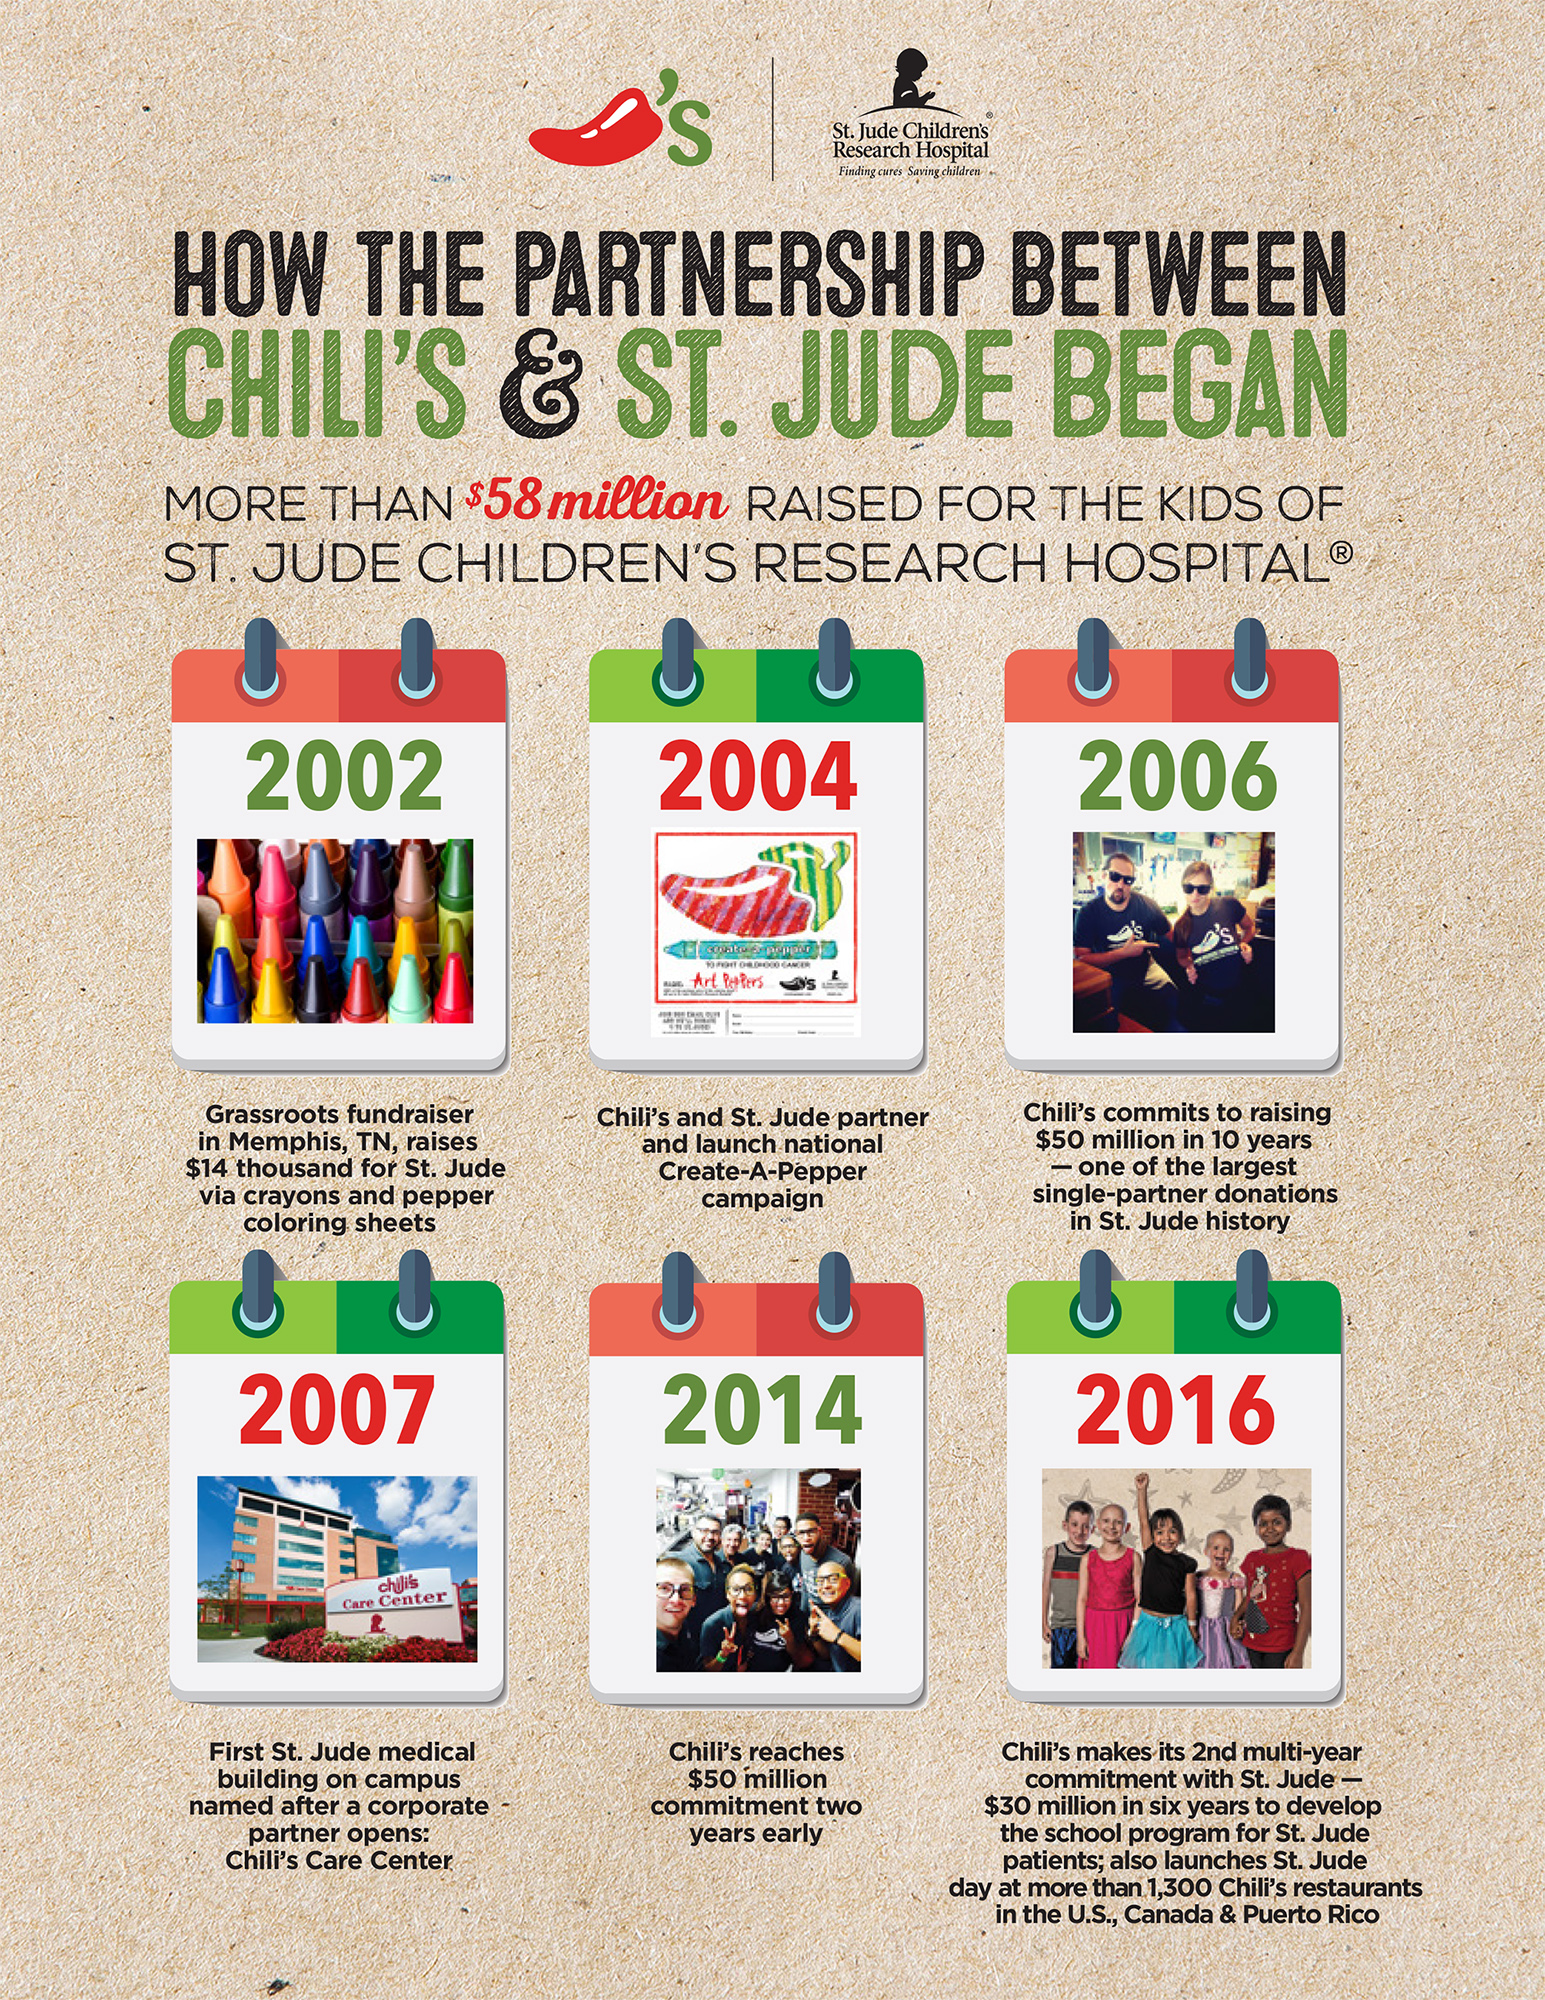 Timeline: The story behind how the partnership between Chili's and St. Jude began